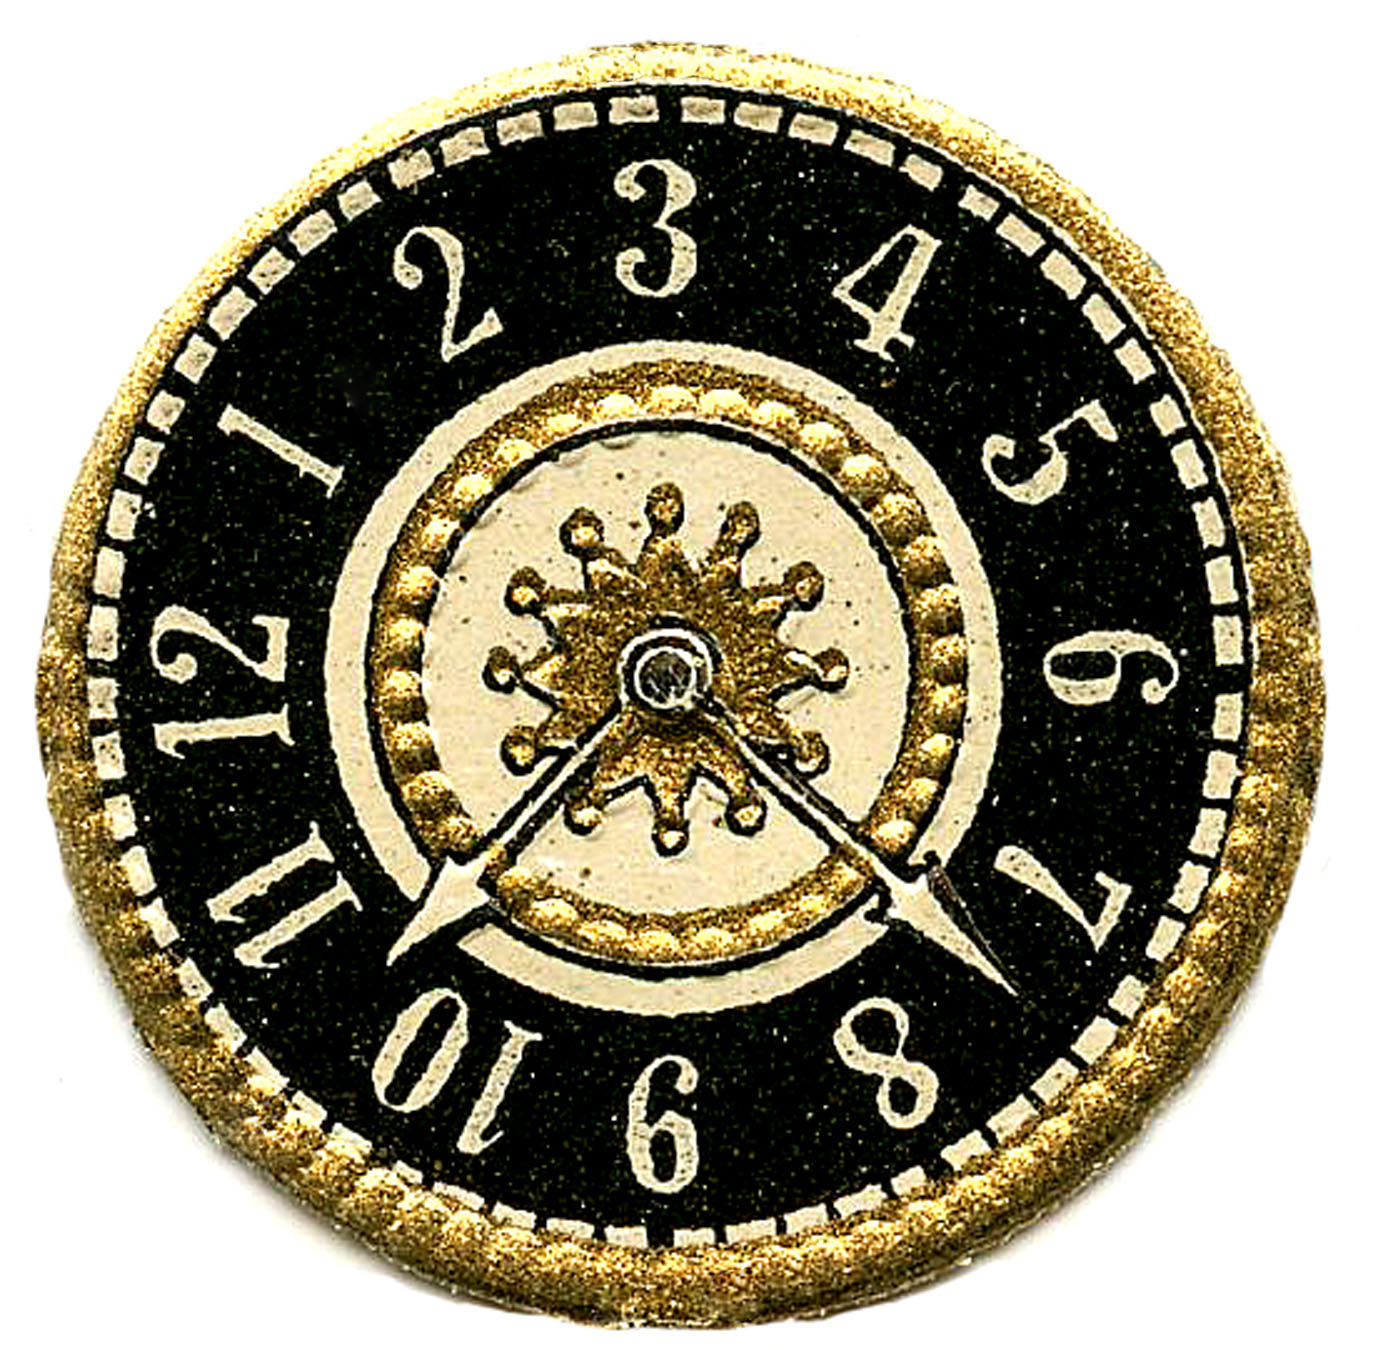 This is an image of Selective Pictures of Clock Faces